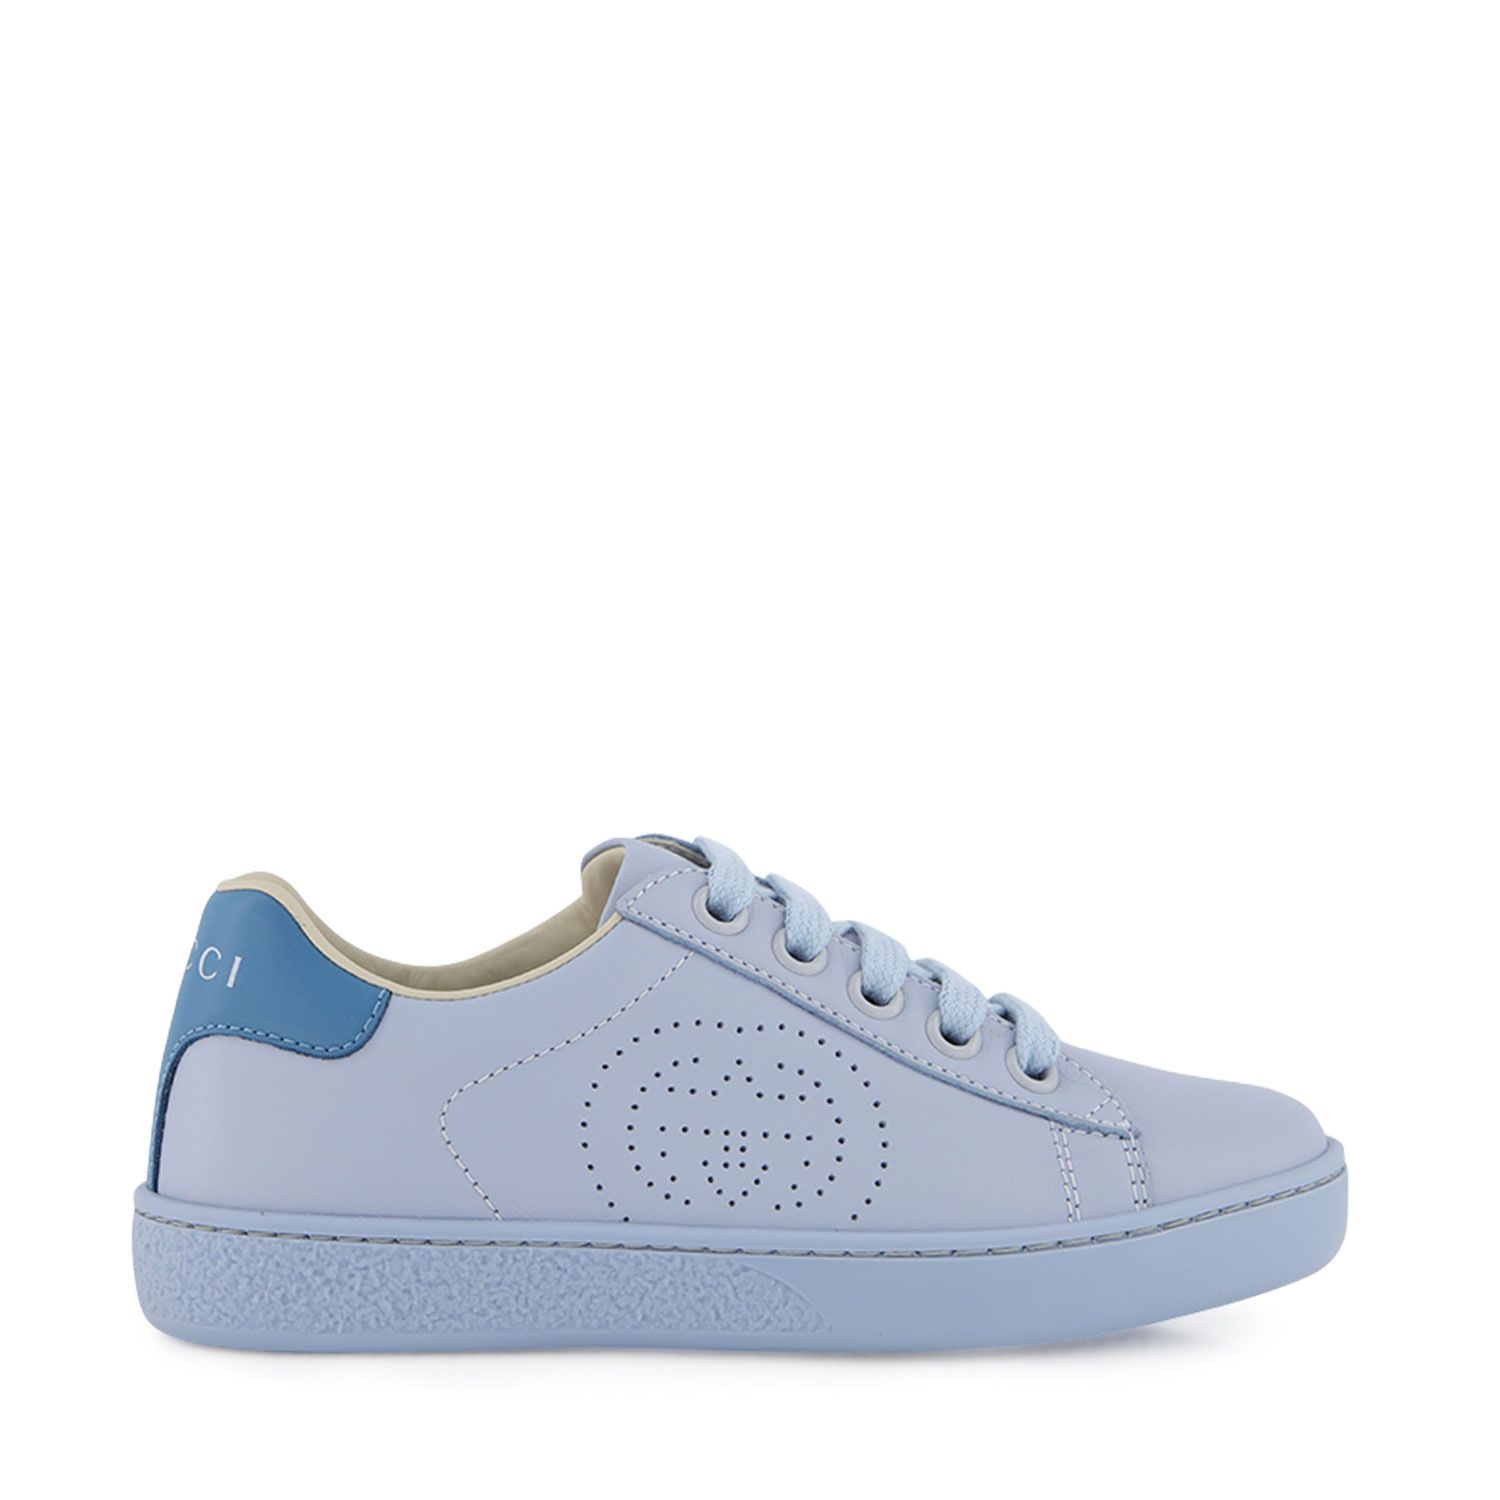 Picture of Gucci 626619 kids sneakers light blue